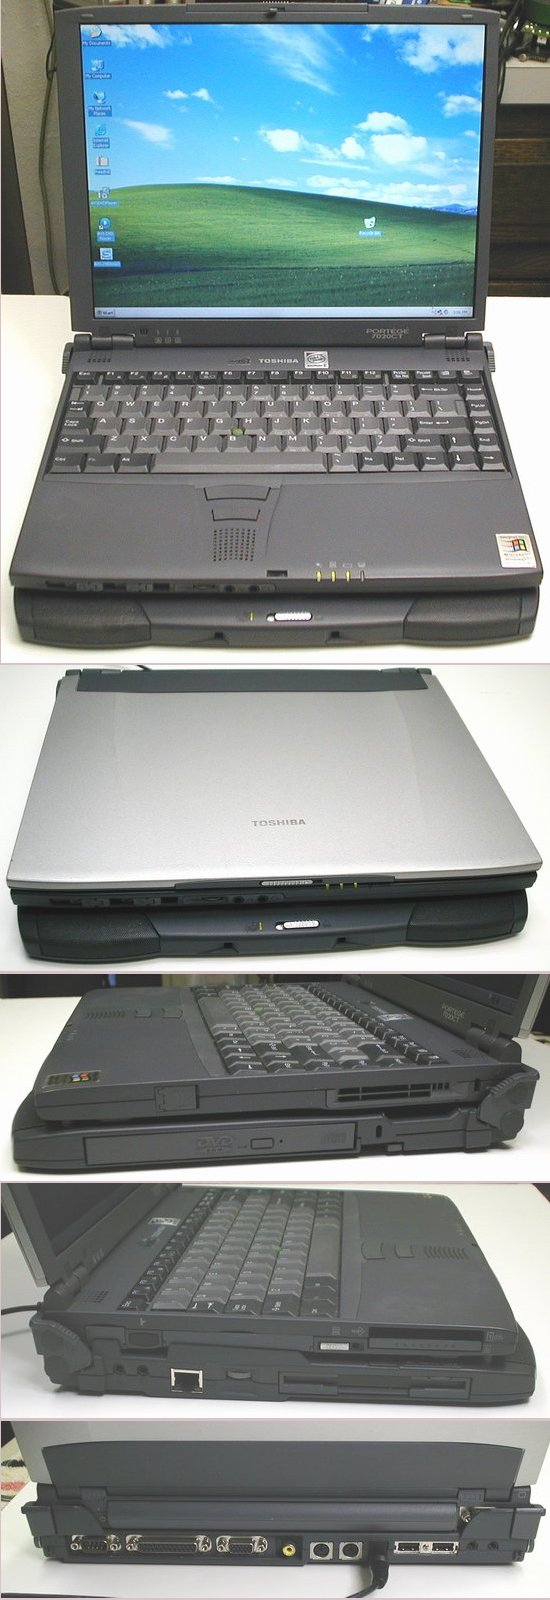 Picture of: toshiba portege laptop 7020ct 6gb 192mb dvd docking station 7020 and tech talk, comments, help & reviews.